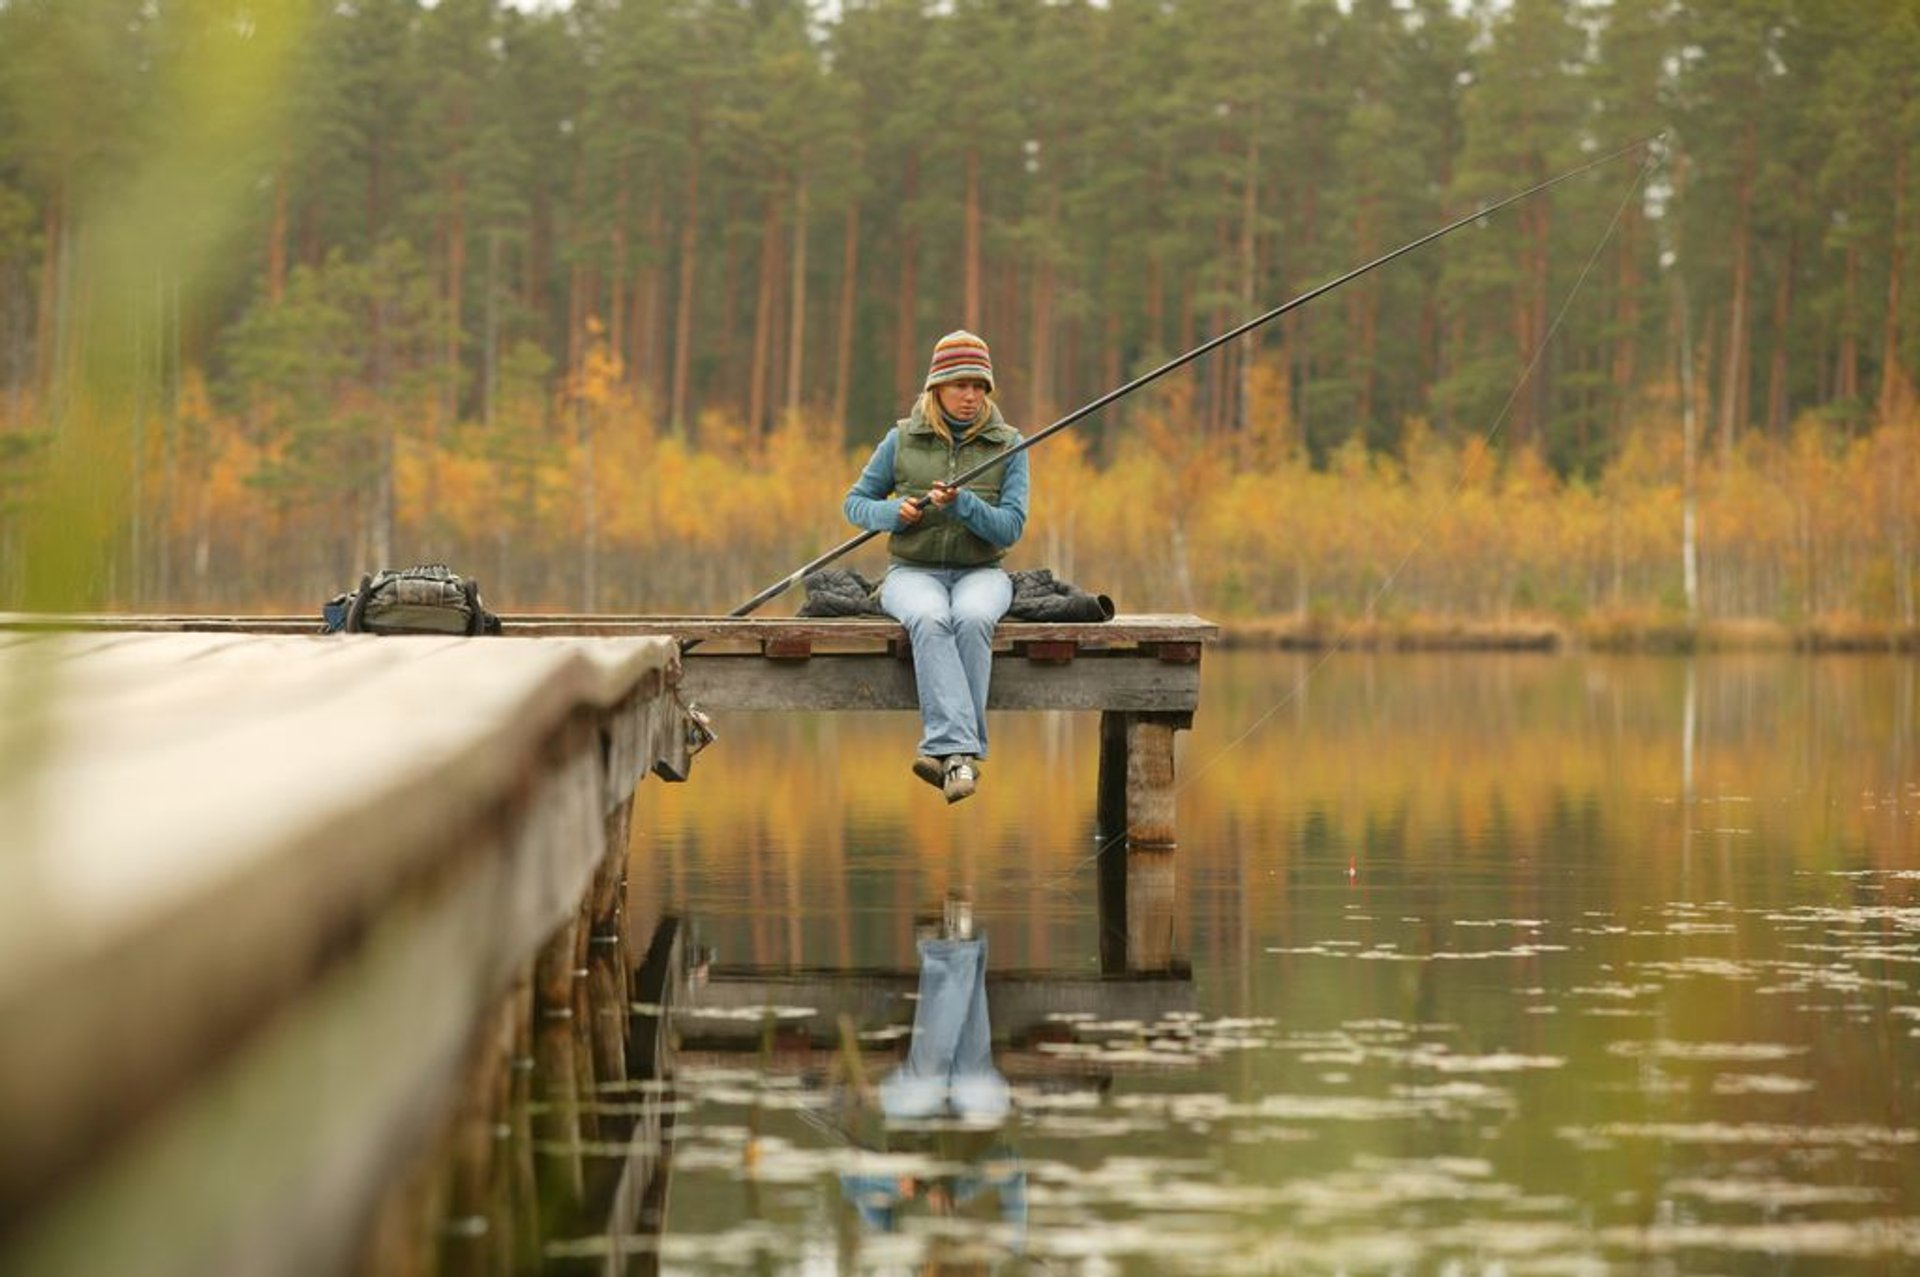 Fishing in Estonia 2019 - Best Time